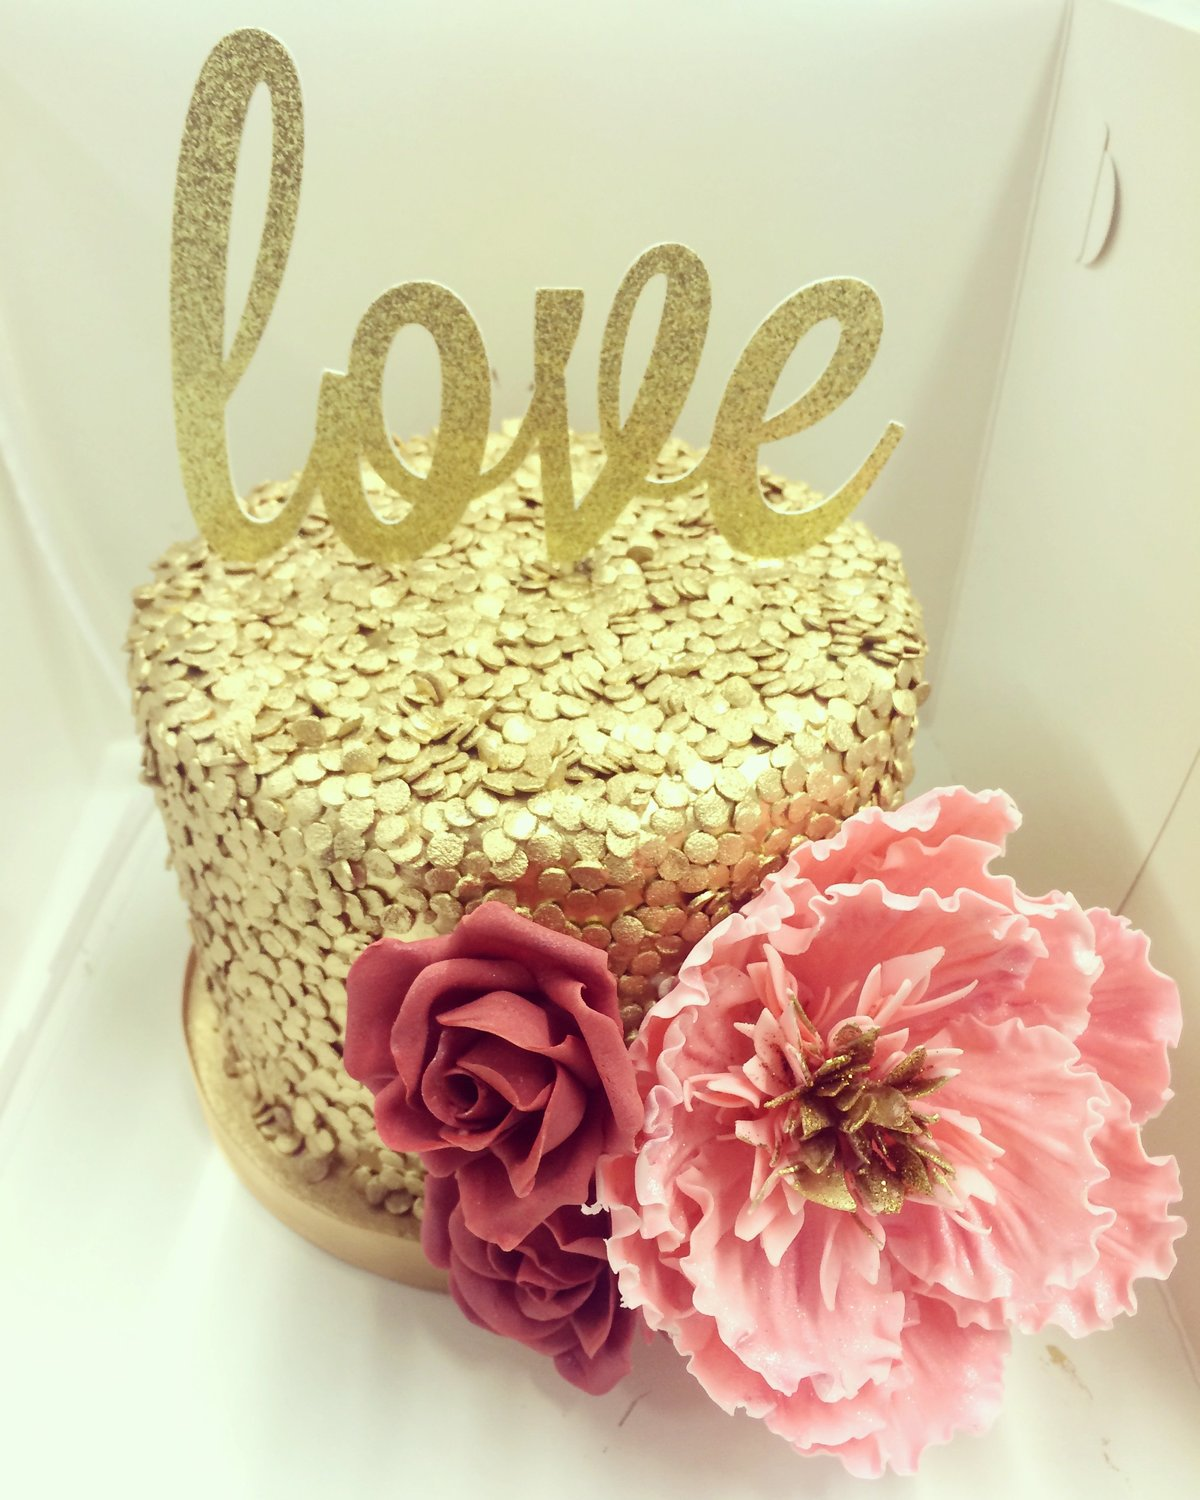 Gold Sequins cutting cake